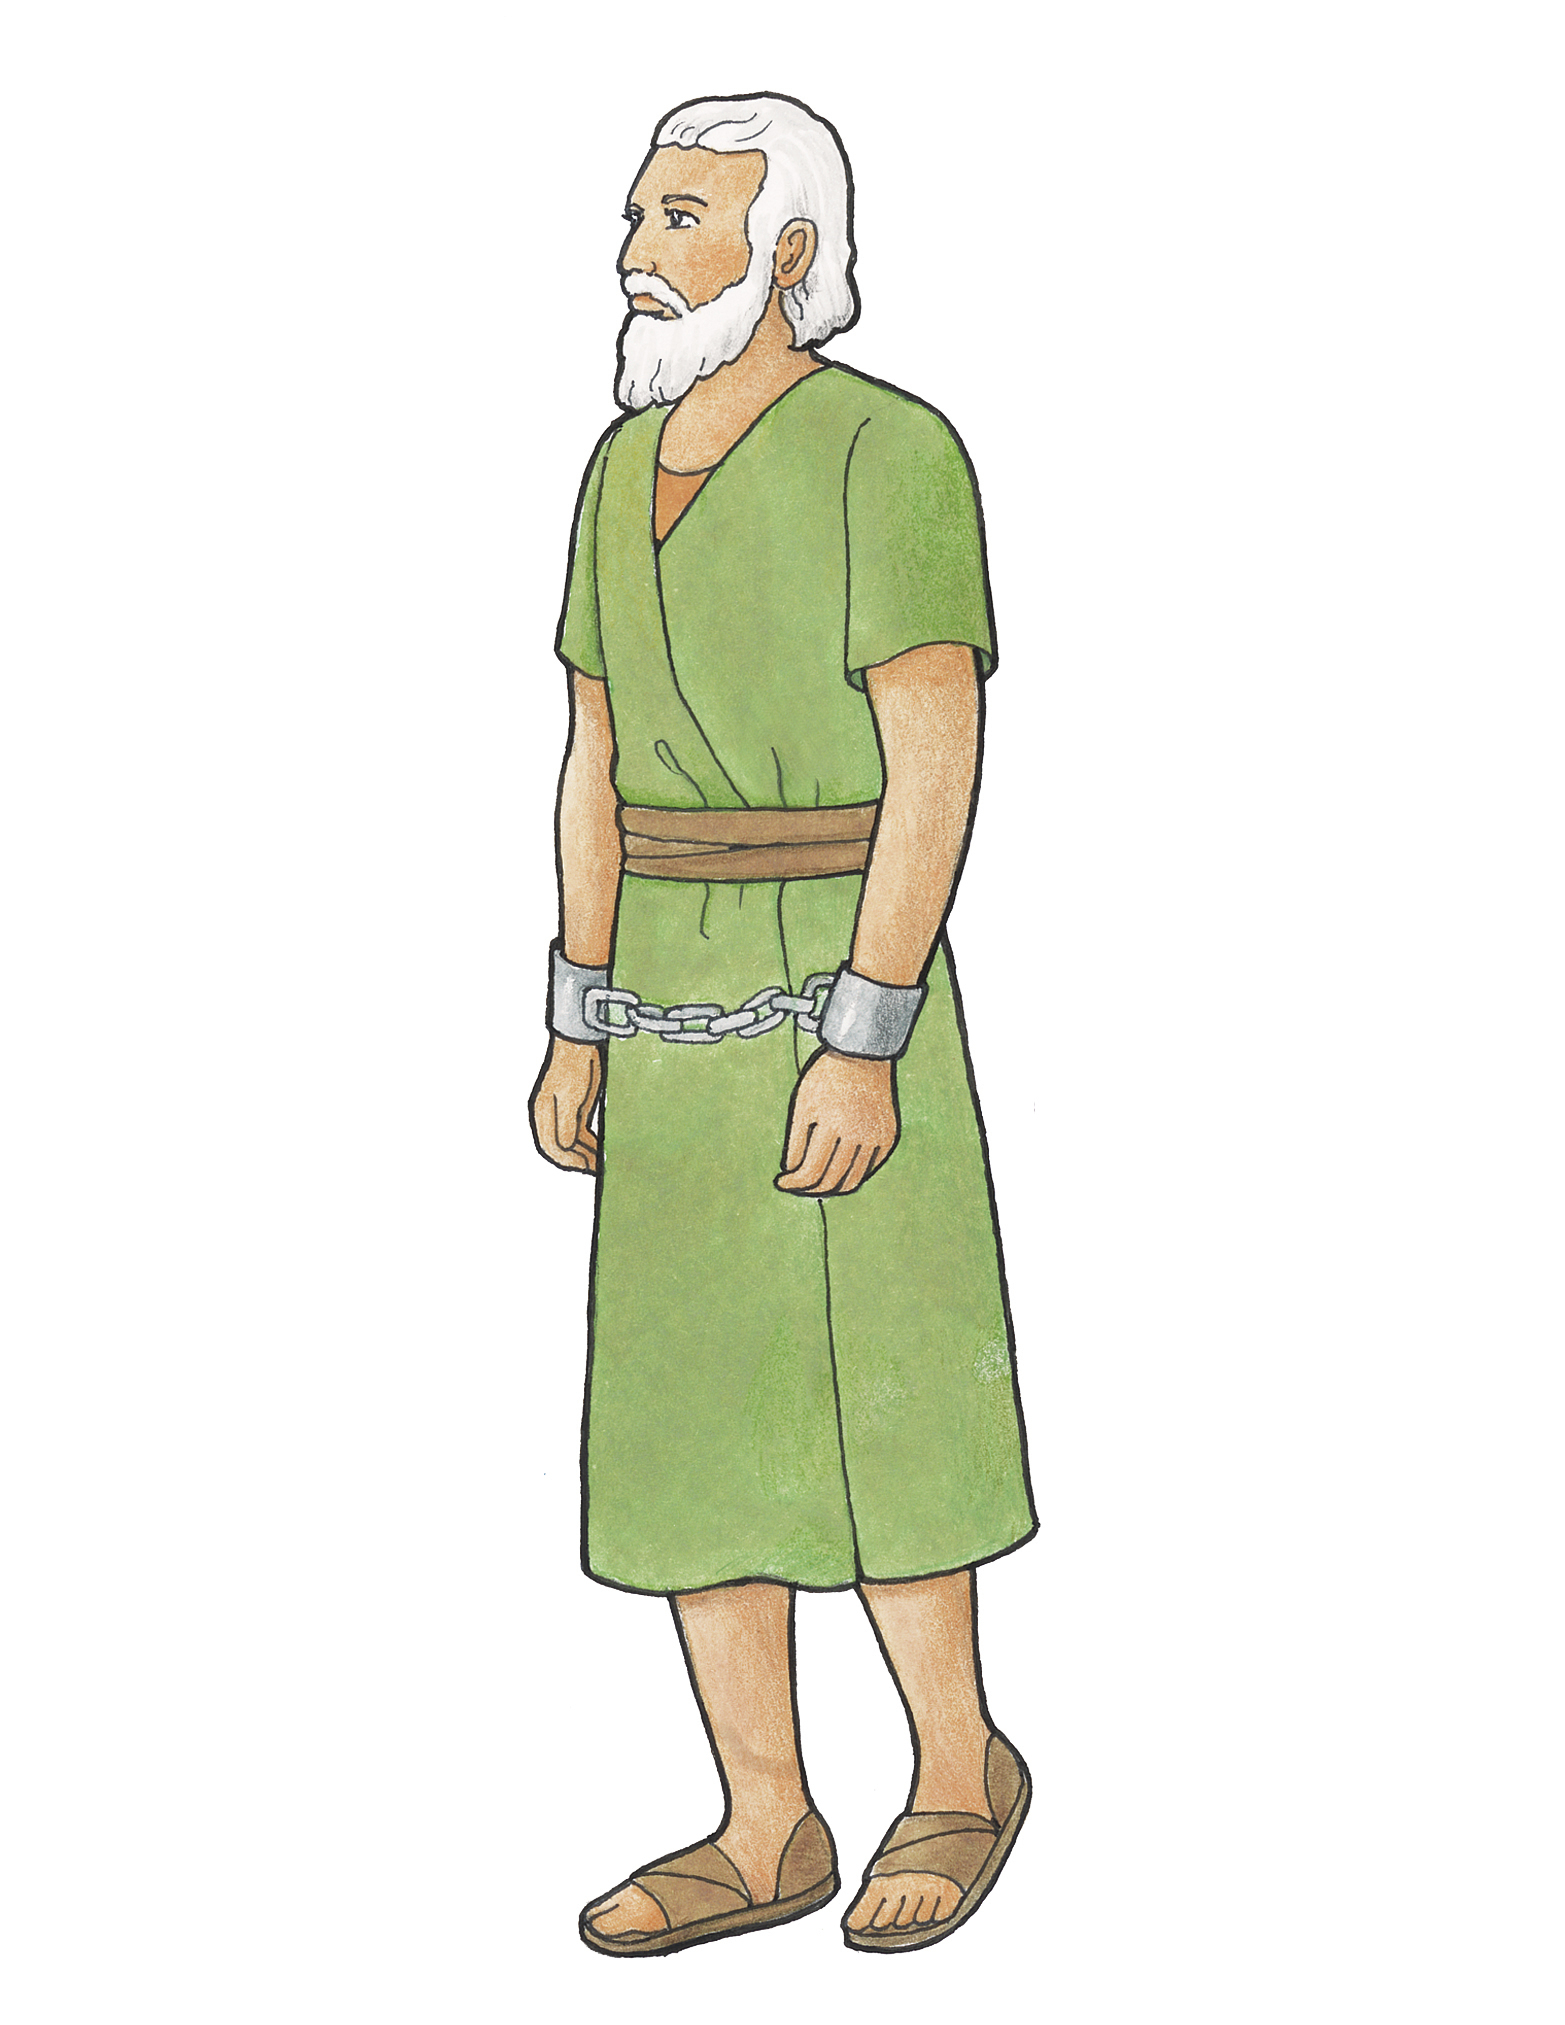 Abinadi, a character from the Book of Mormon, dressed in traditional clothing.